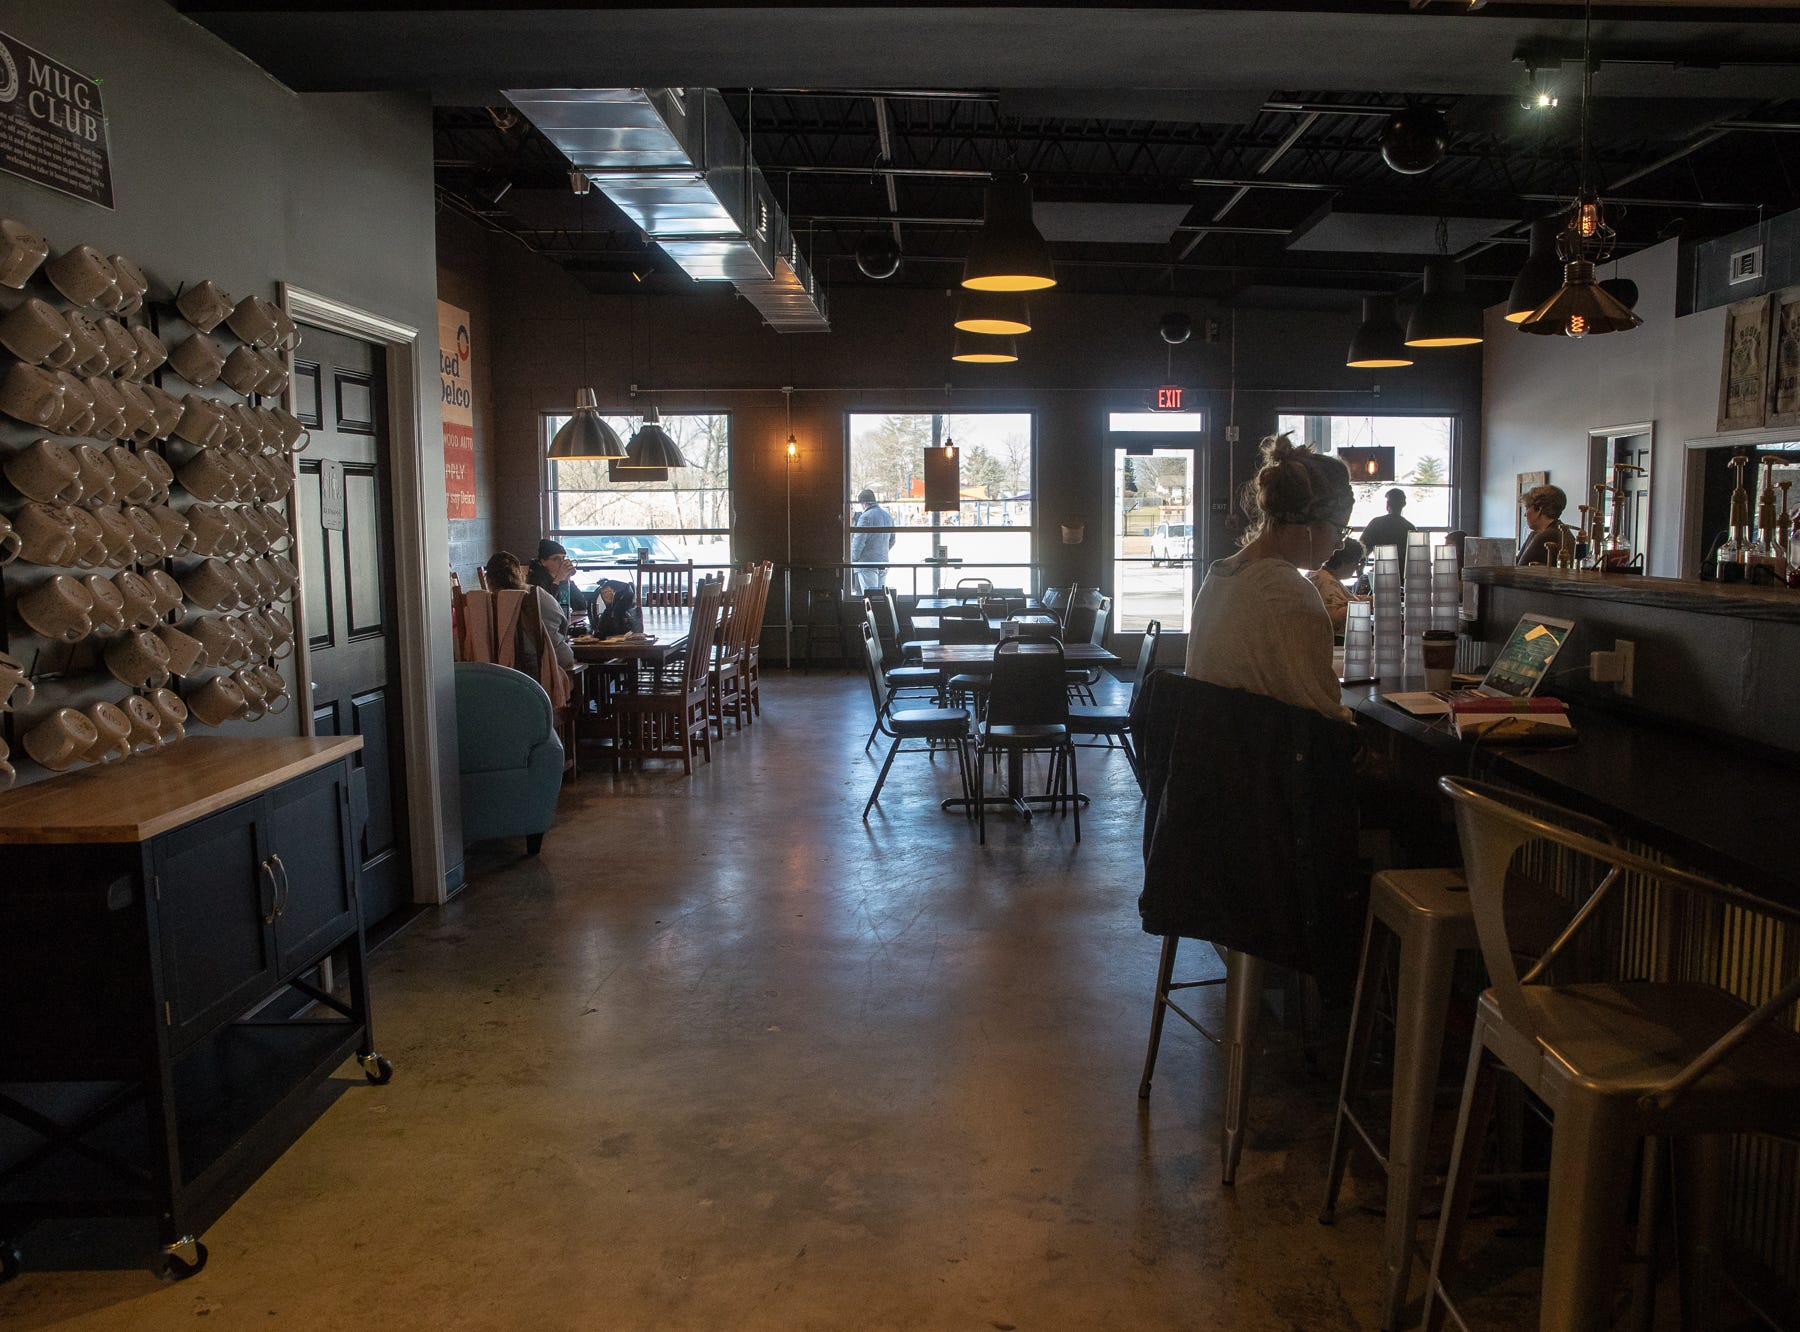 Inside Coffeehouse Five on Wednesday, Feb. 13, 2019. The coffeeshop is located on Market Street in Greenwood, Ind.